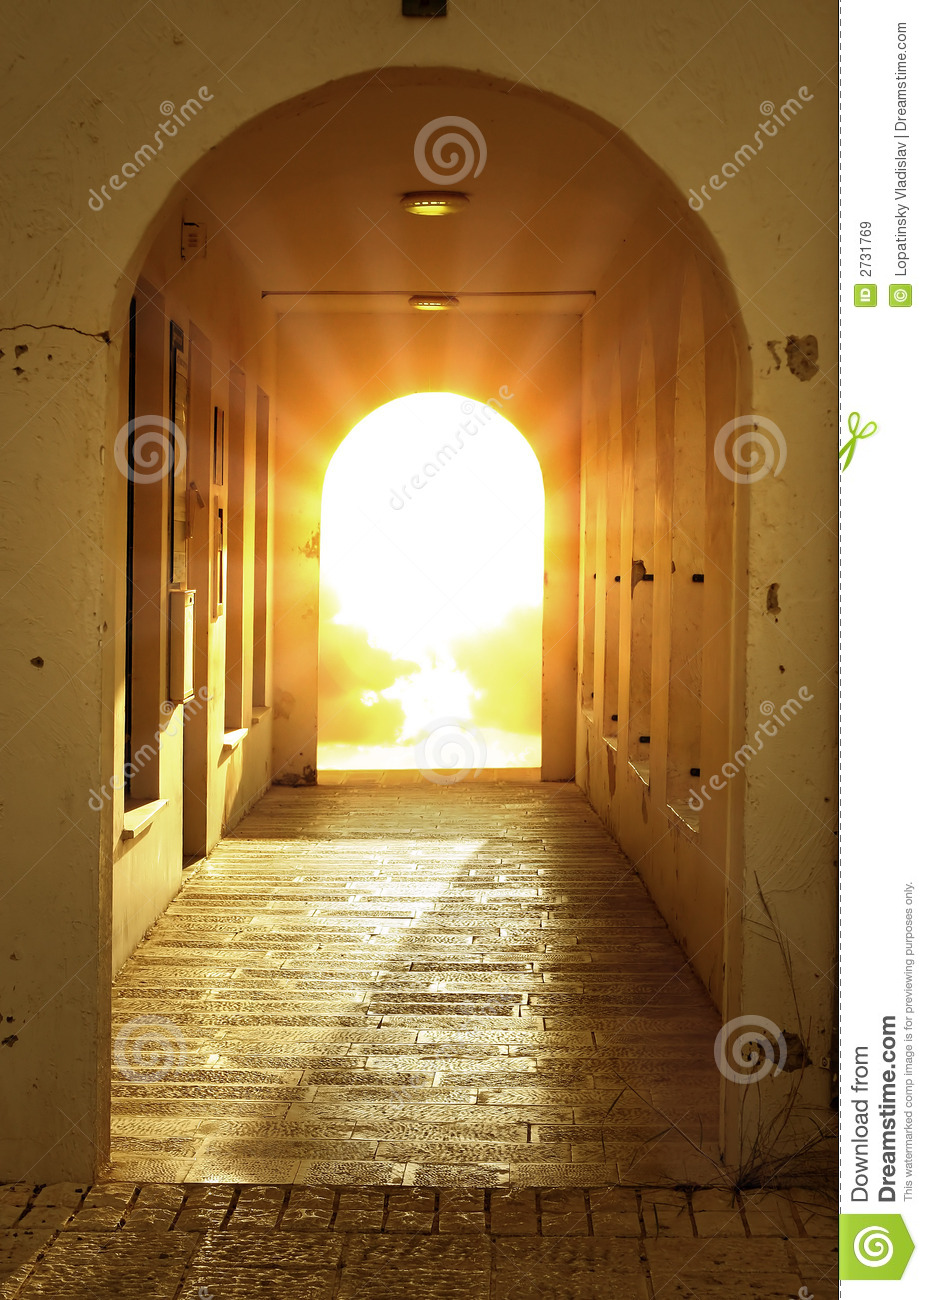 bright light in door stock image image of peace praying